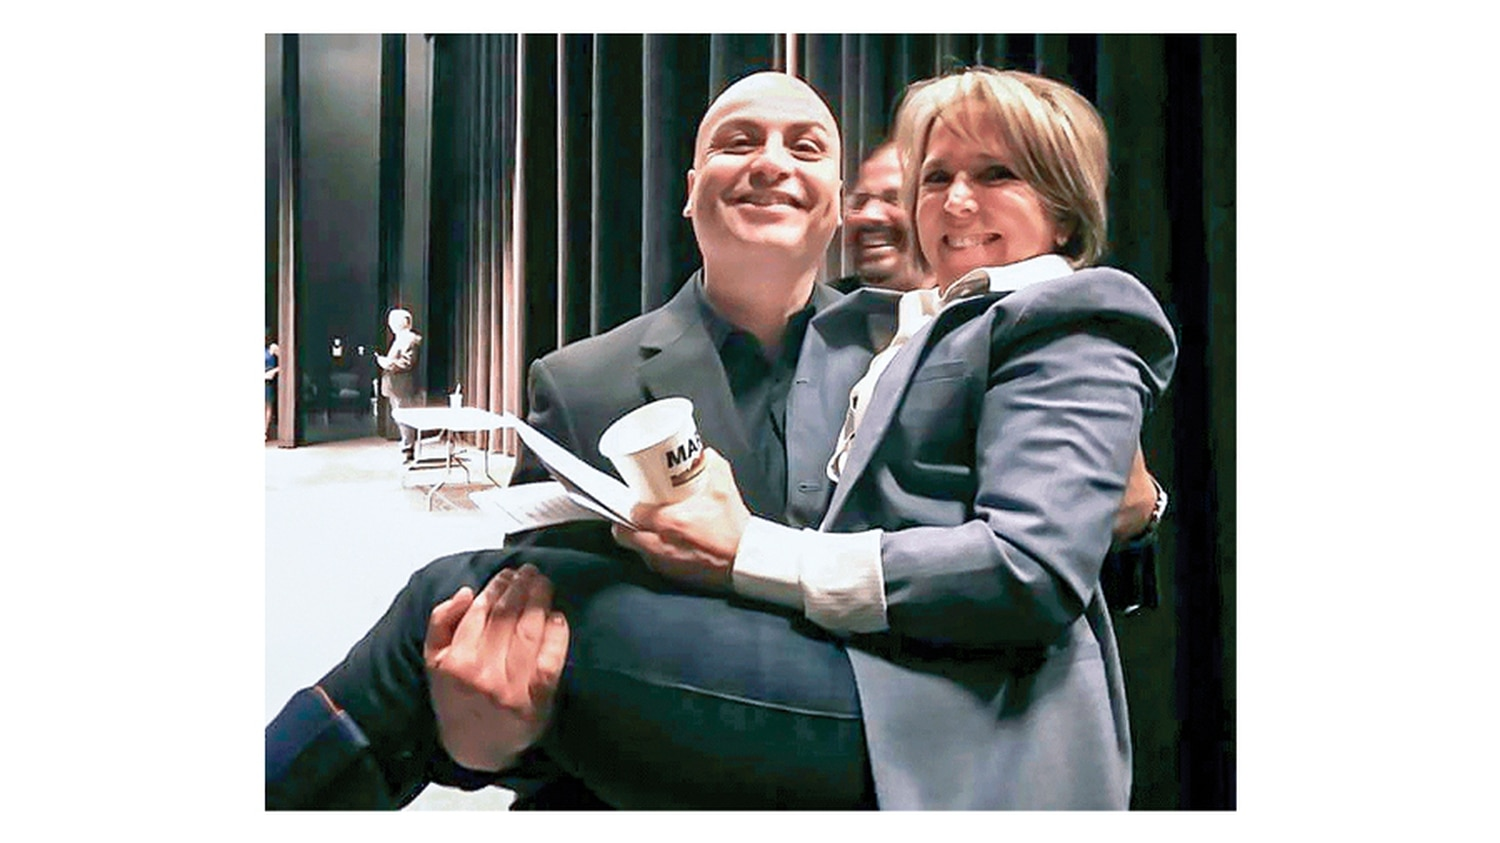 Balderas, a Democrat, is polling ahead of his two challengers with the momentum of the party's top of the ticket candidate for governor, Michelle Lujan Grisham, pictured in his arms at a party event earlier this year.